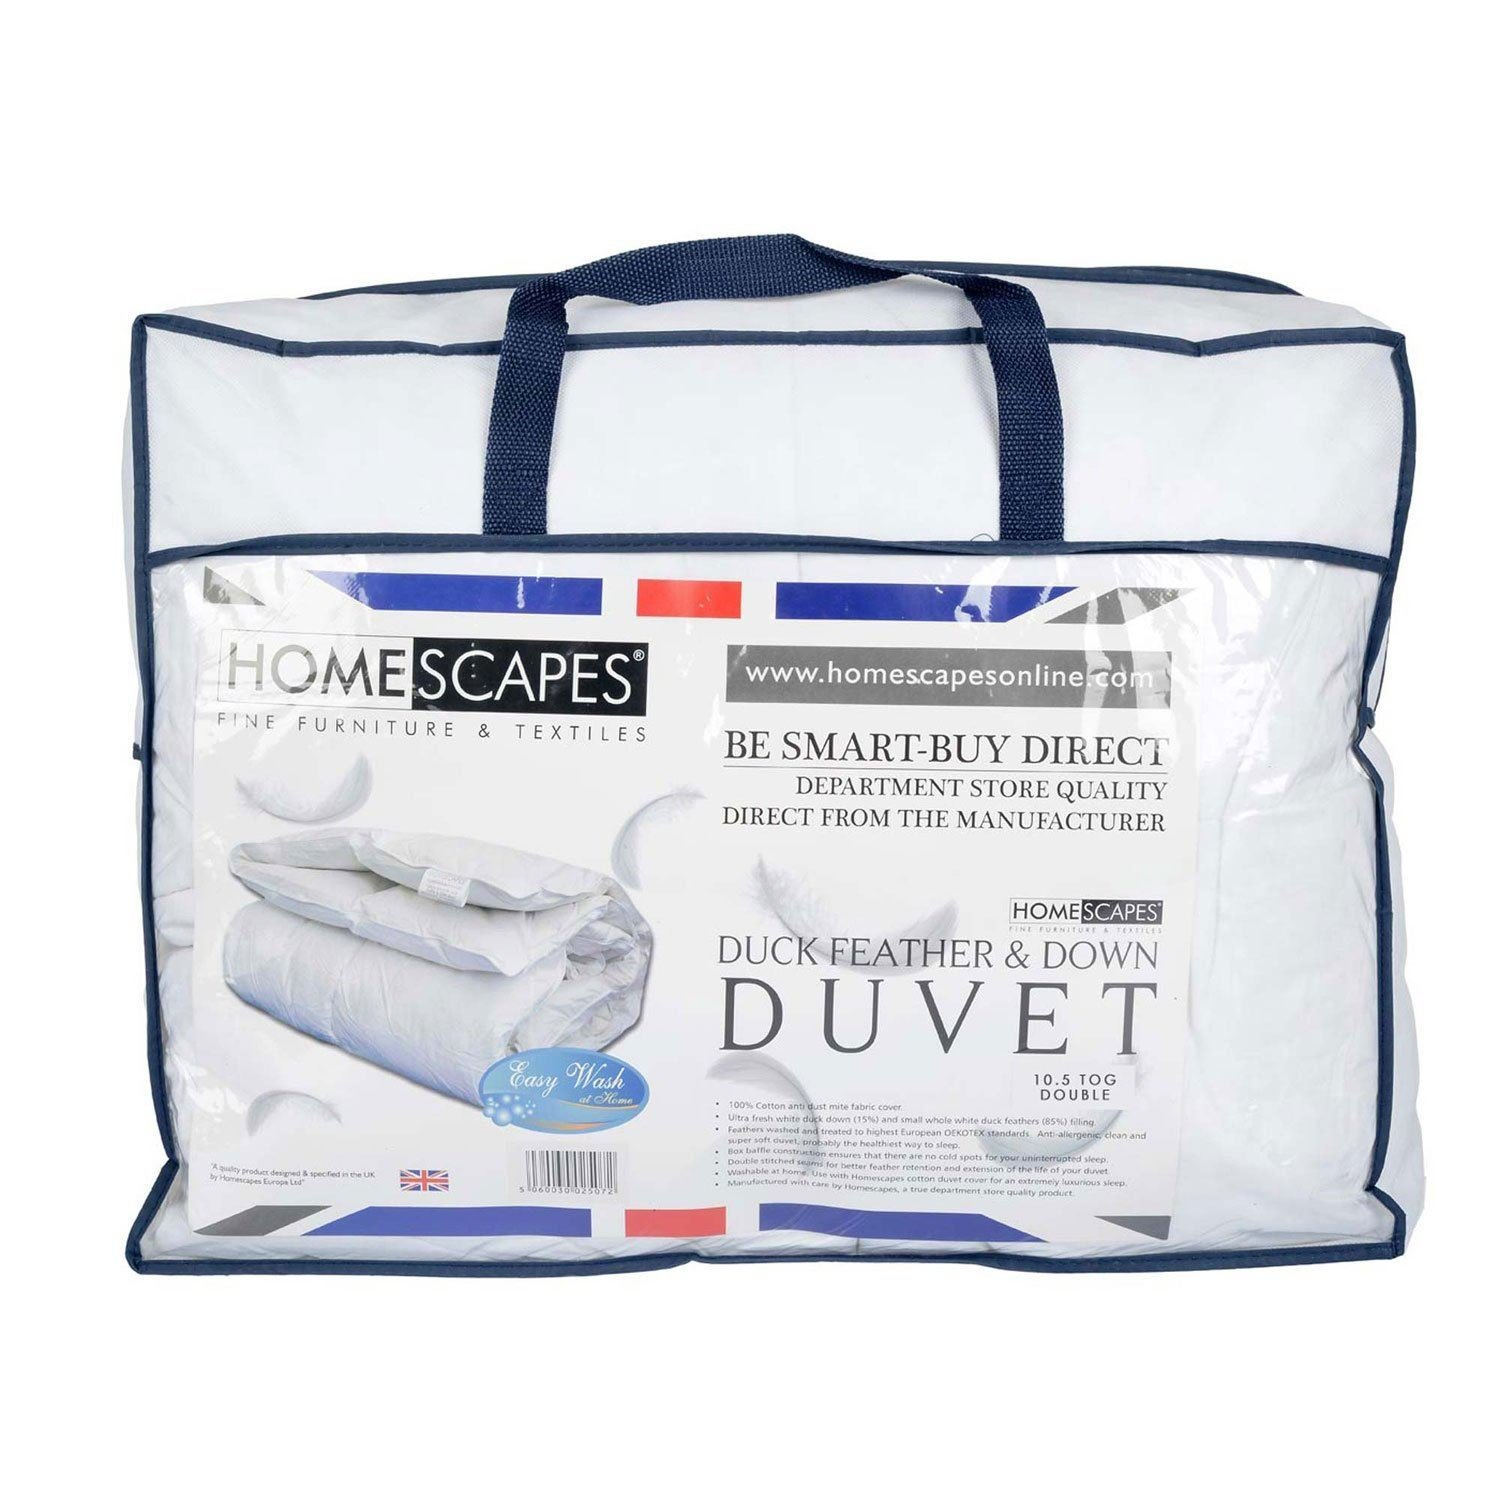 Homescapes Single 10.5 Tog New White Duck Feather & Down Duvet - 100% Cotton Anti Dust Mite & Down Proof Cover - Anti allergen - Washable at Home Luxury Quilt Others